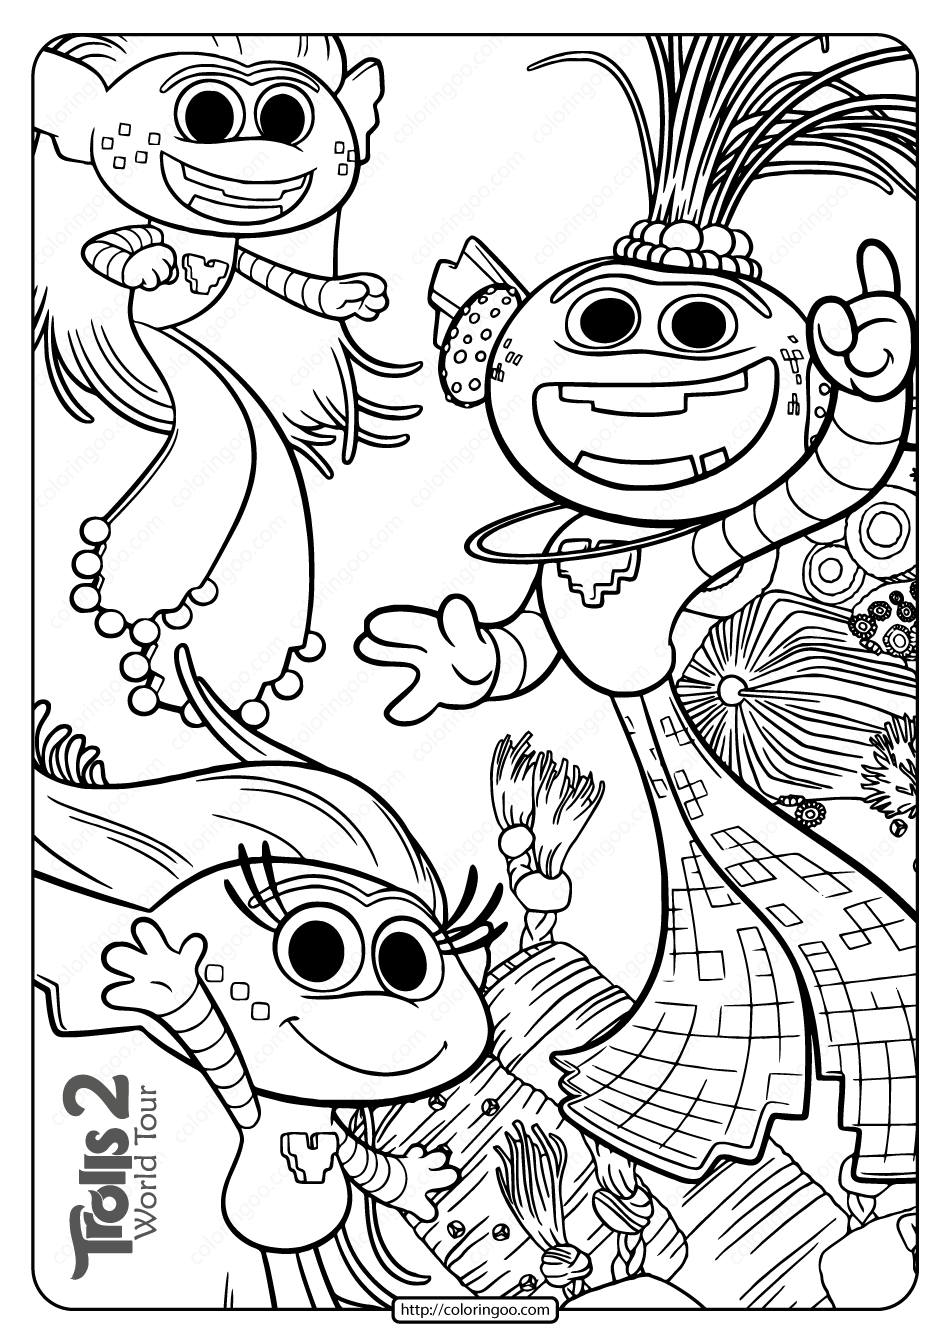 free printable coloring page hard coloring pages for adults best coloring pages for kids printable coloring page free